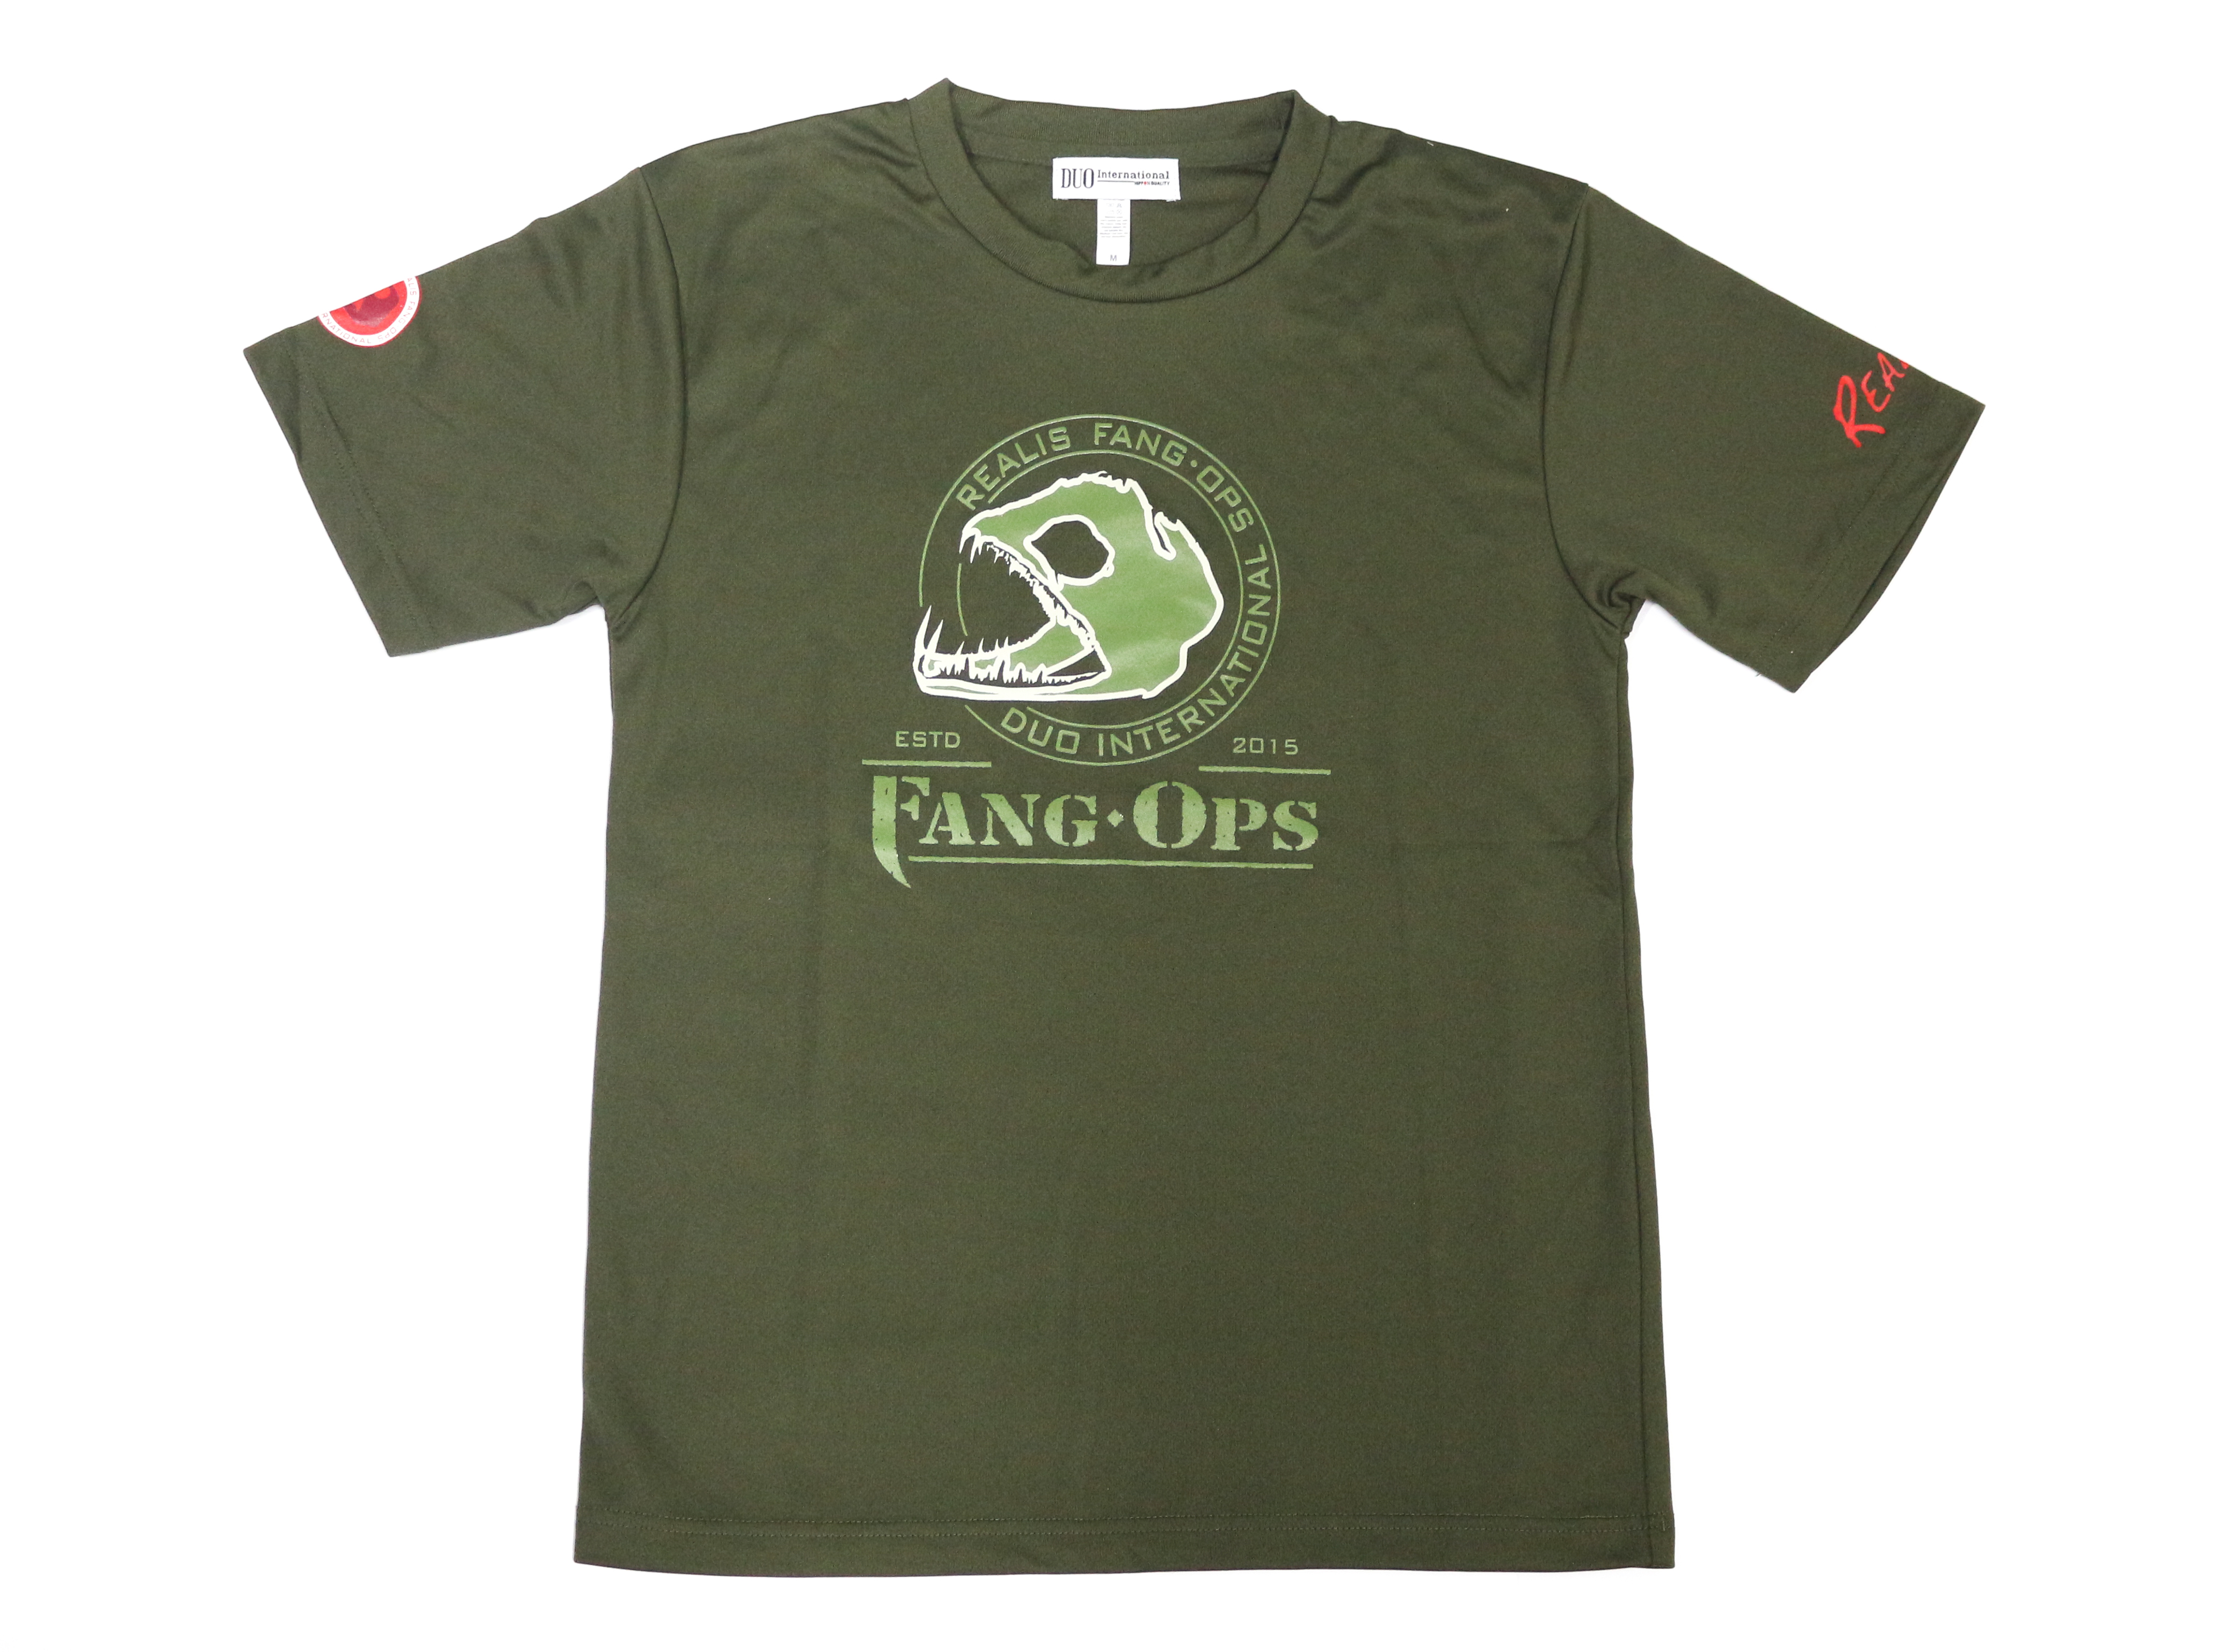 Duo T-Shirt Fang Ops Dry Fit Short Sleeve Size XL Army Green (6540)